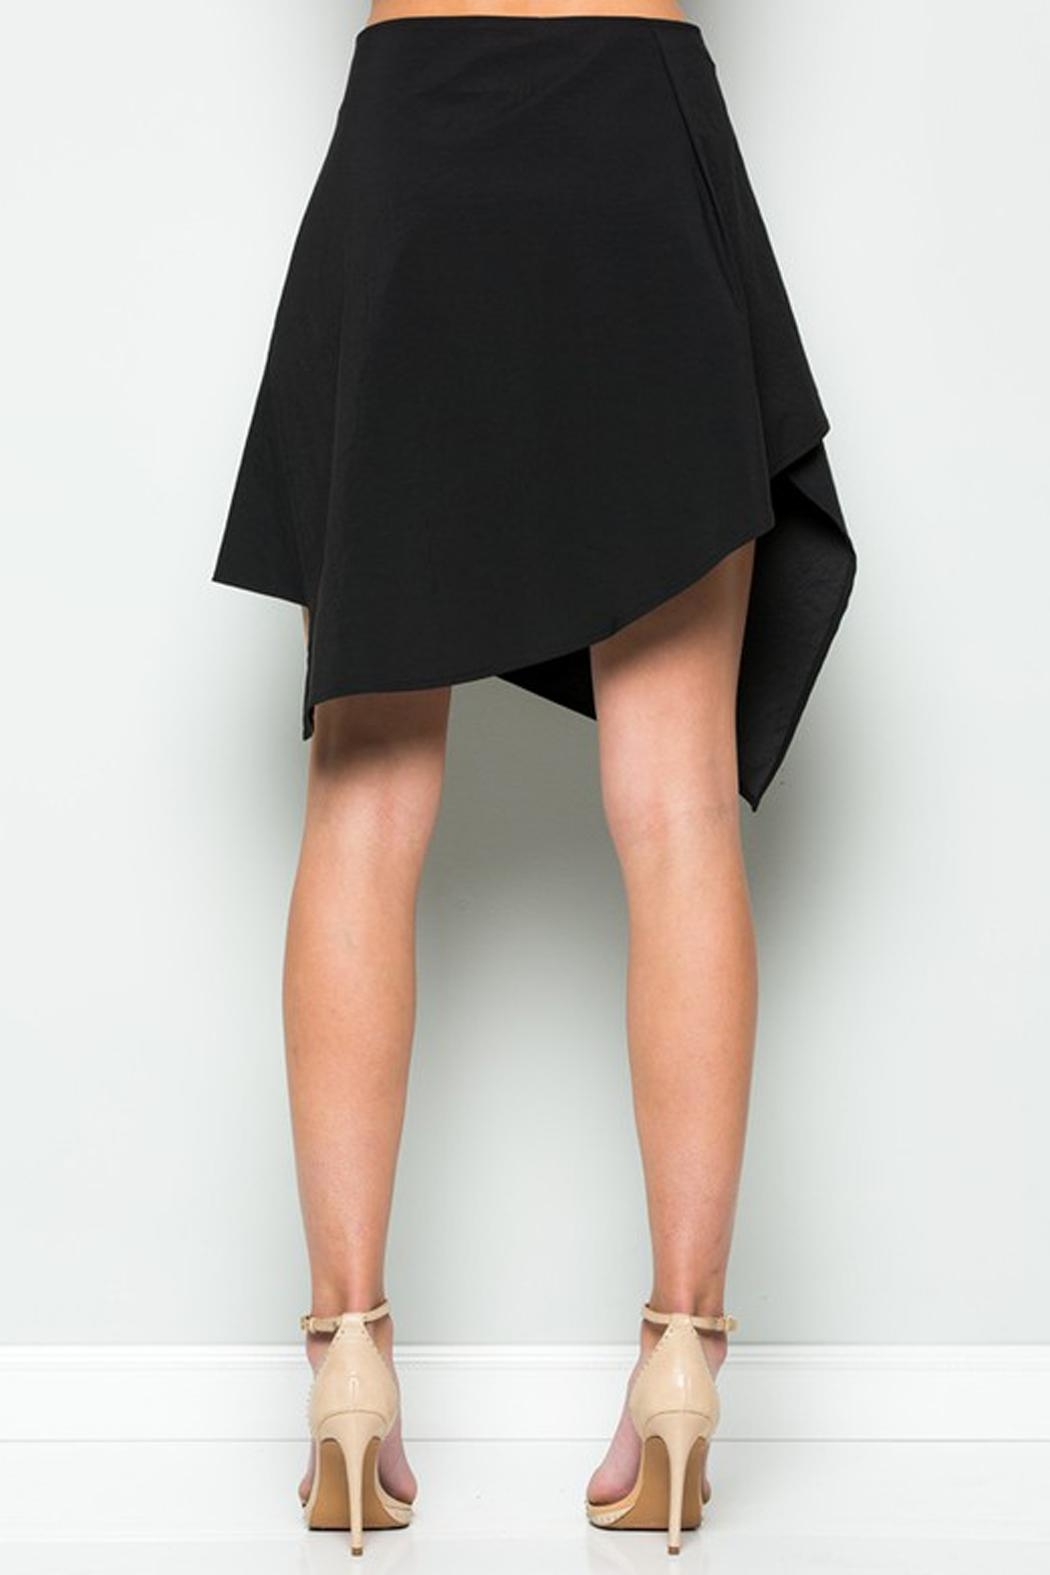 essue Mina Skirt - Side Cropped Image